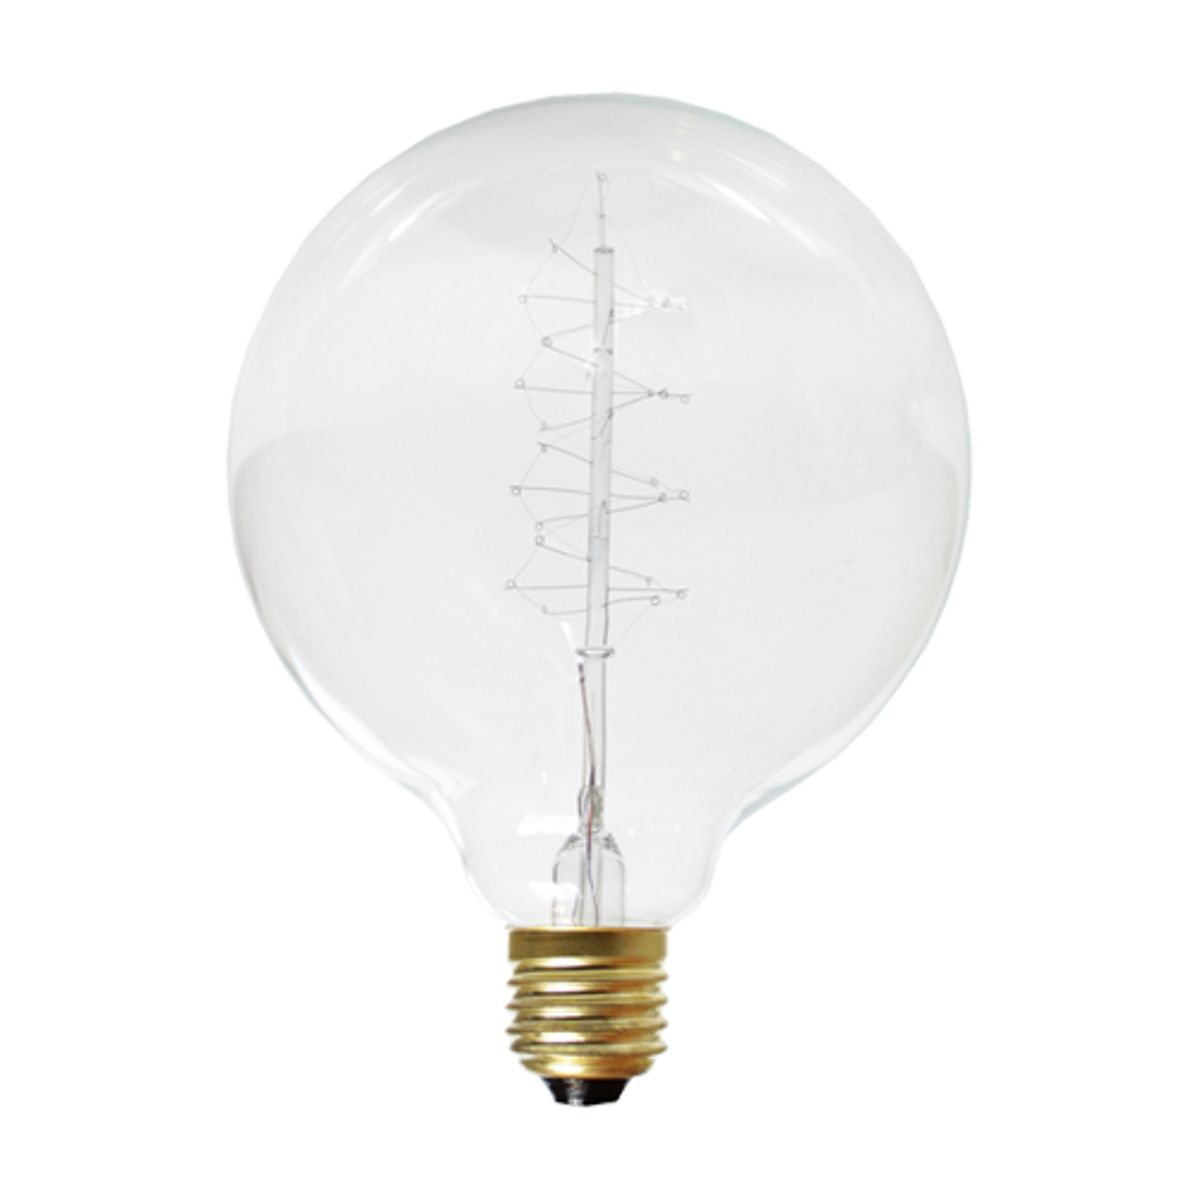 Ampoule globe E27/40W filament de carbone 125 mm Nud Collection